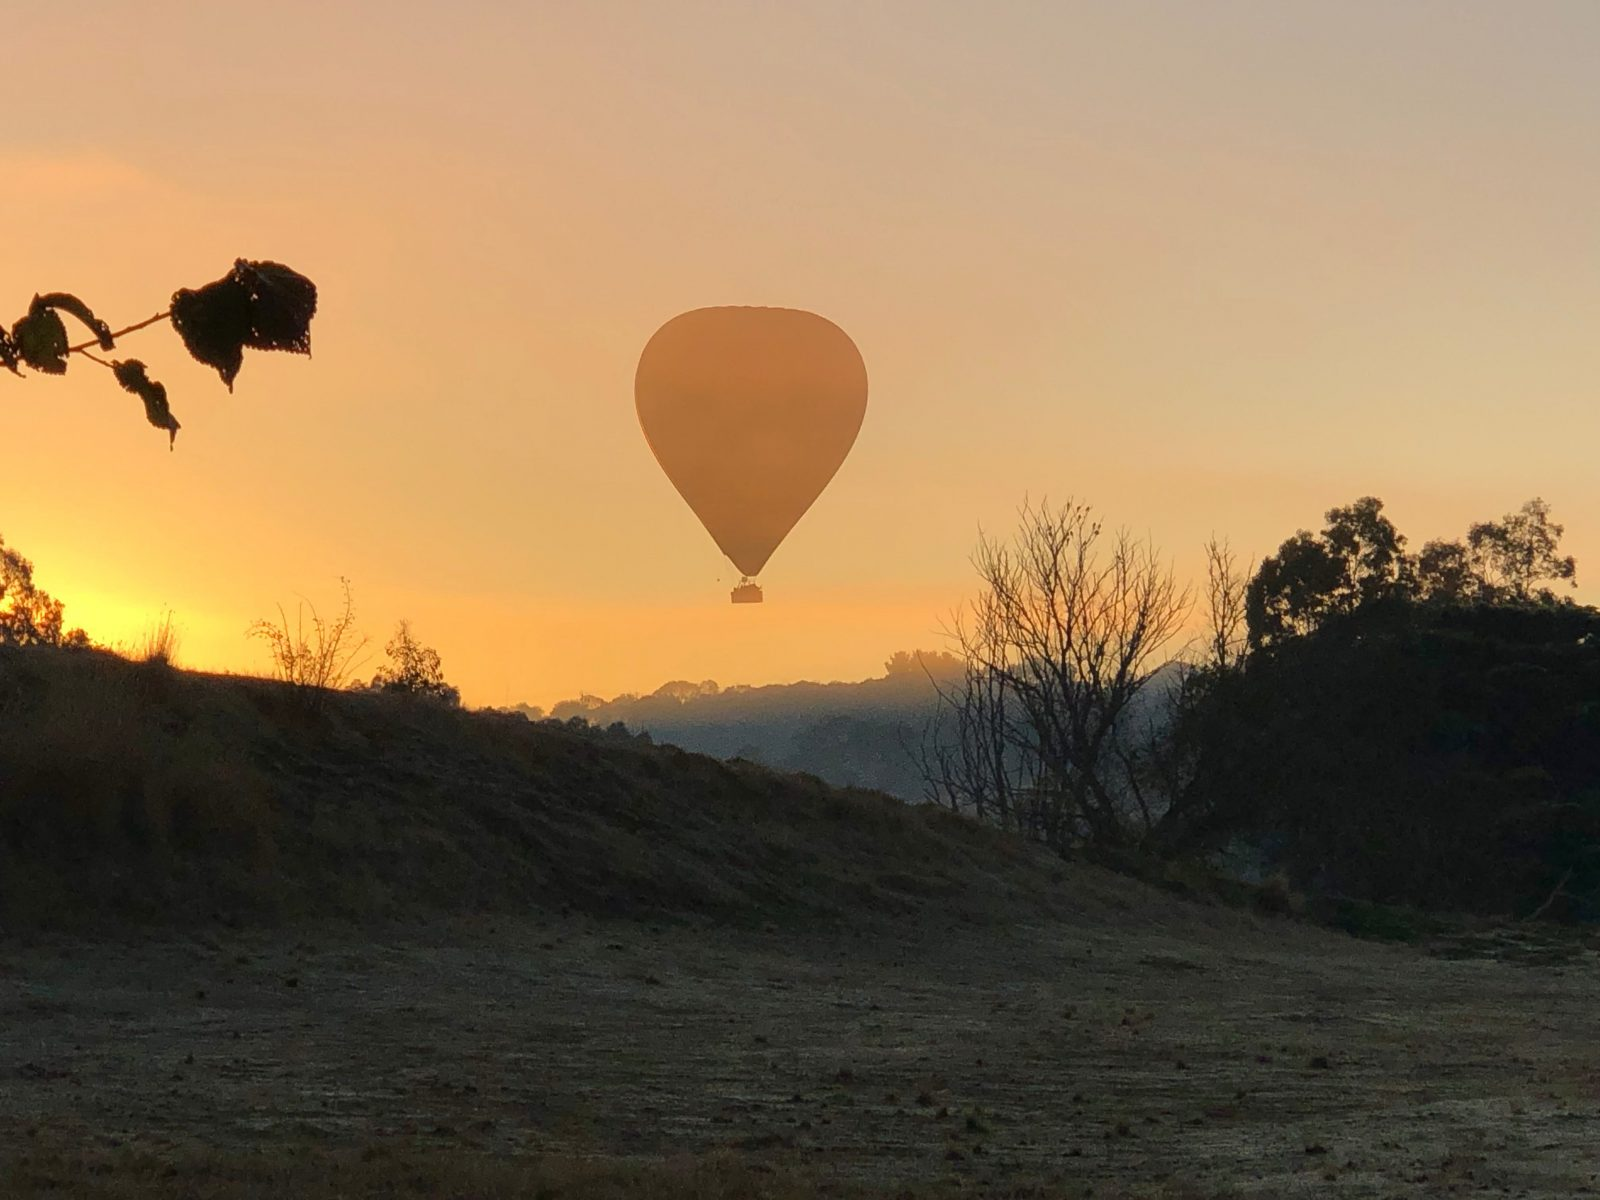 the peaceful adventure of floating in the wind in Tasmania . Hot air ballooning in the wilderness